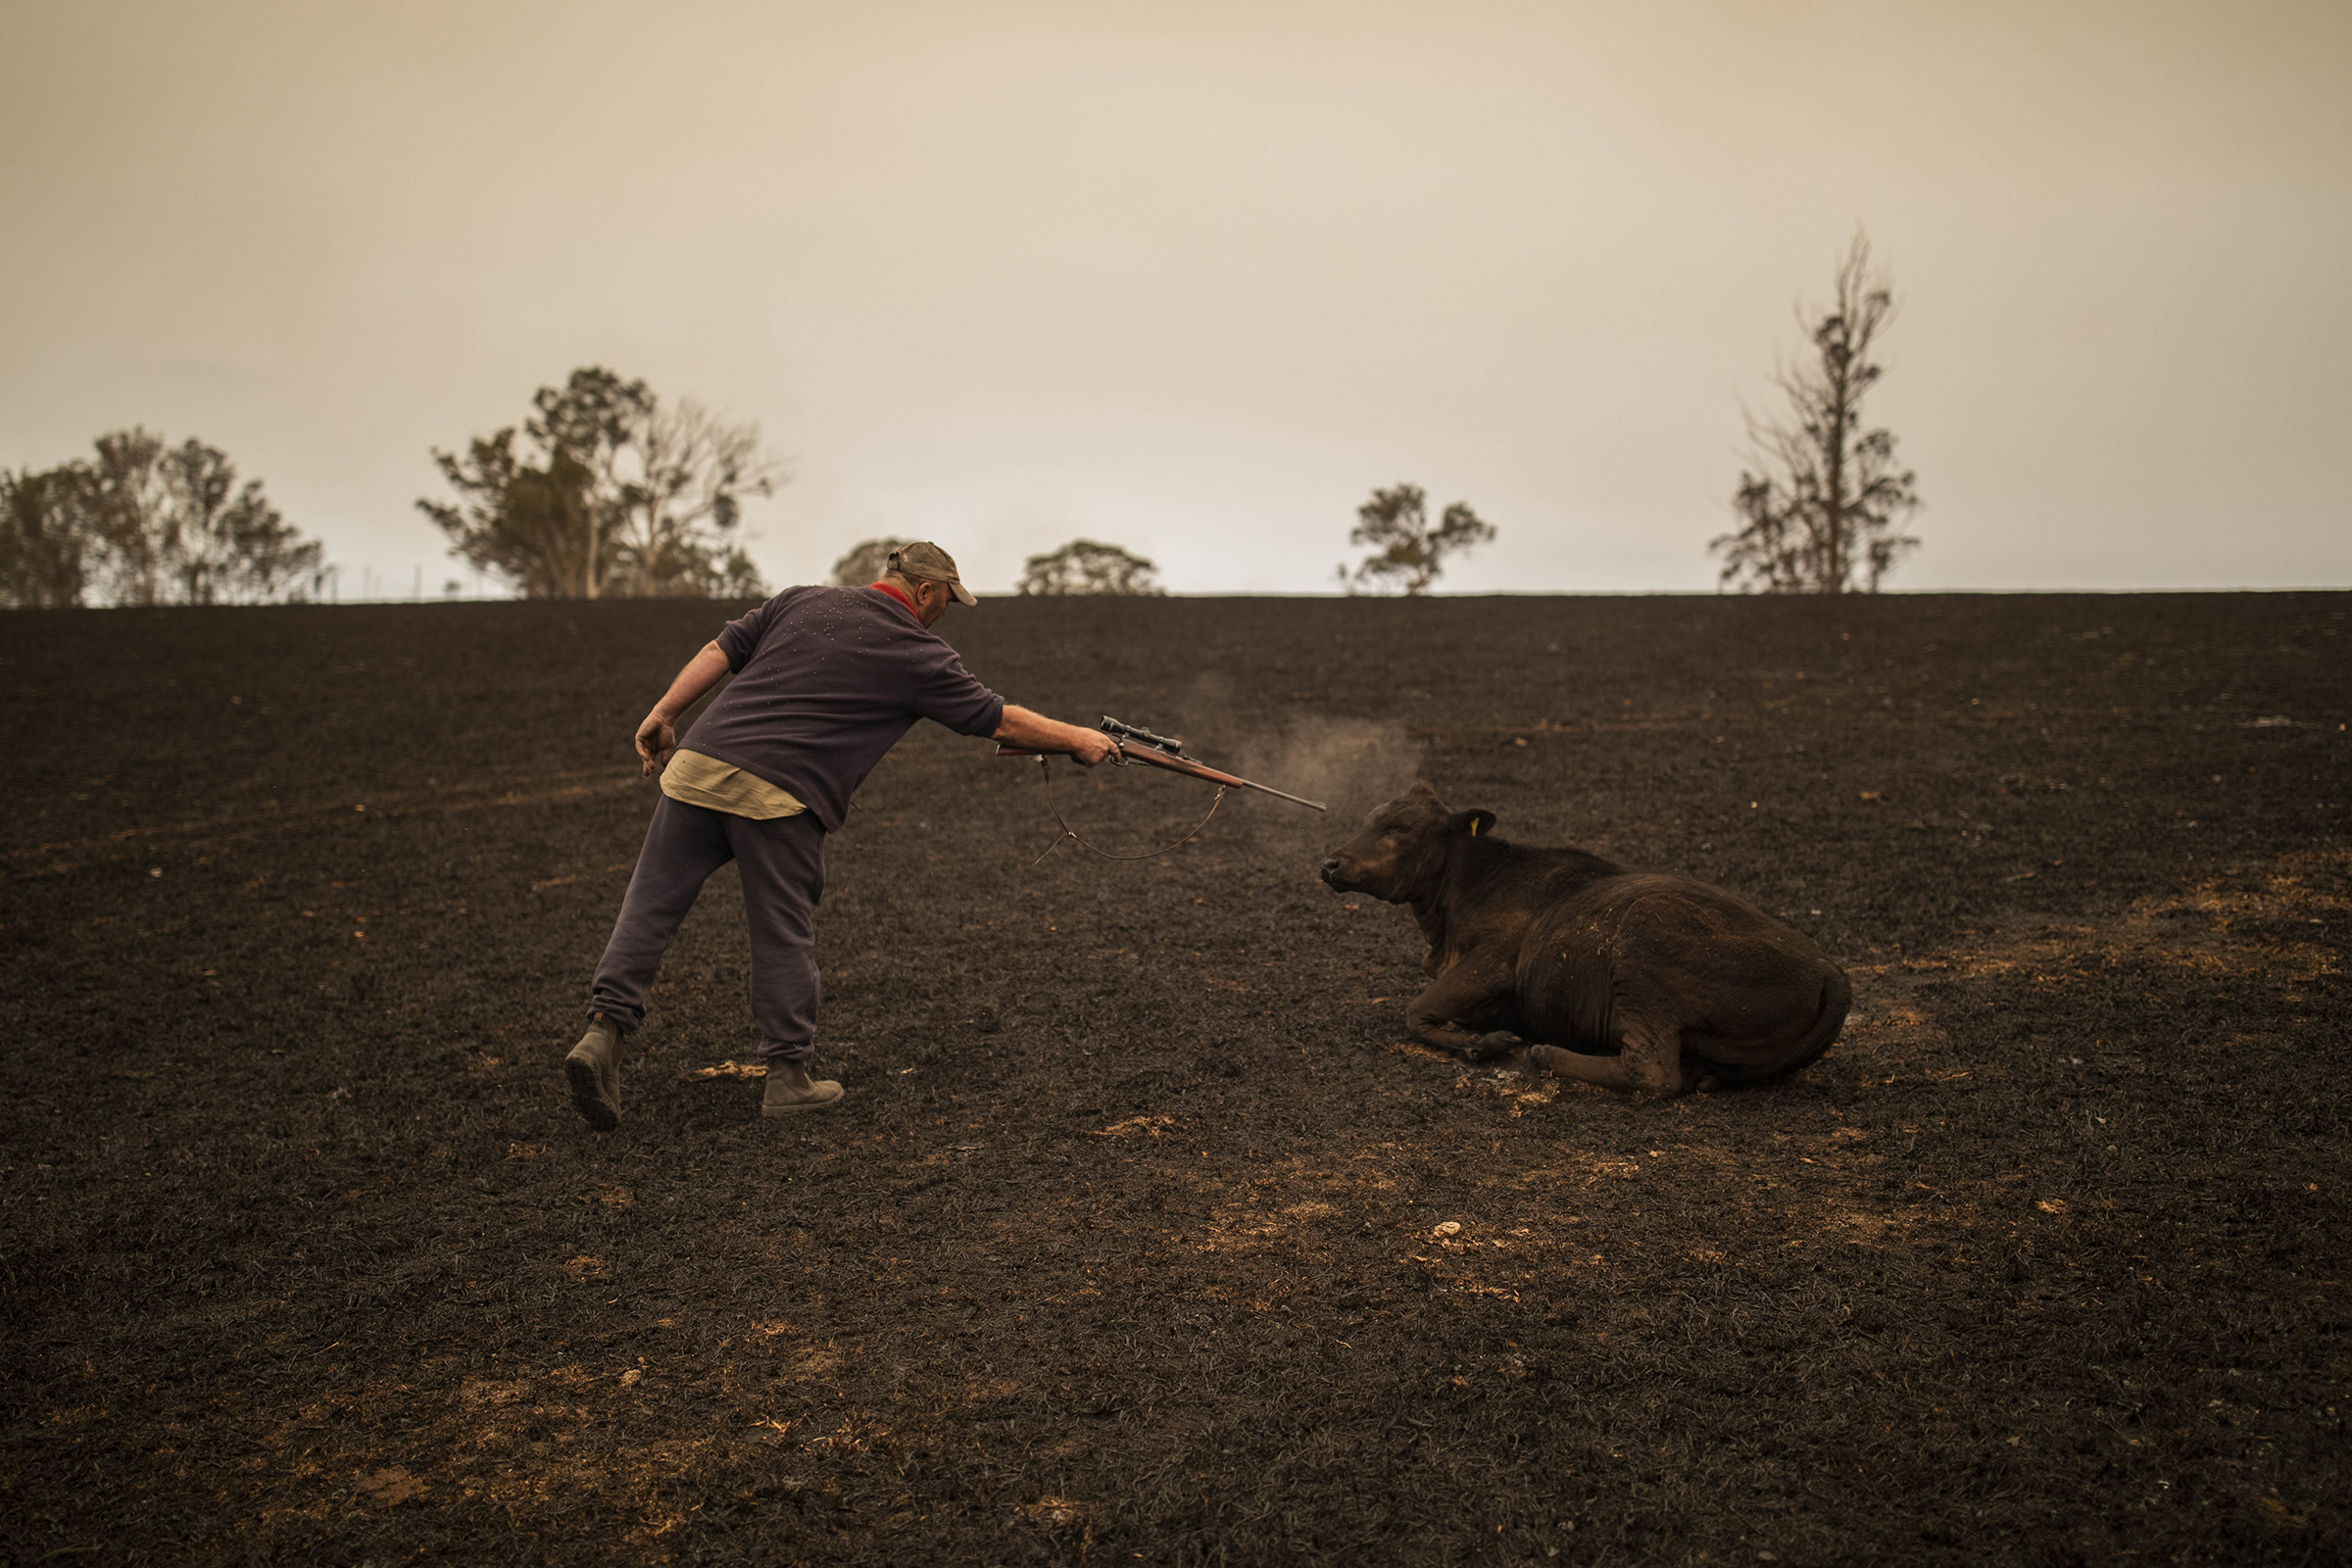 A resident puts down a cow that was severely wounded after a bushfire ravaged a paddock in Coolagolite, New South Wales, Australia, on Jan. 1.